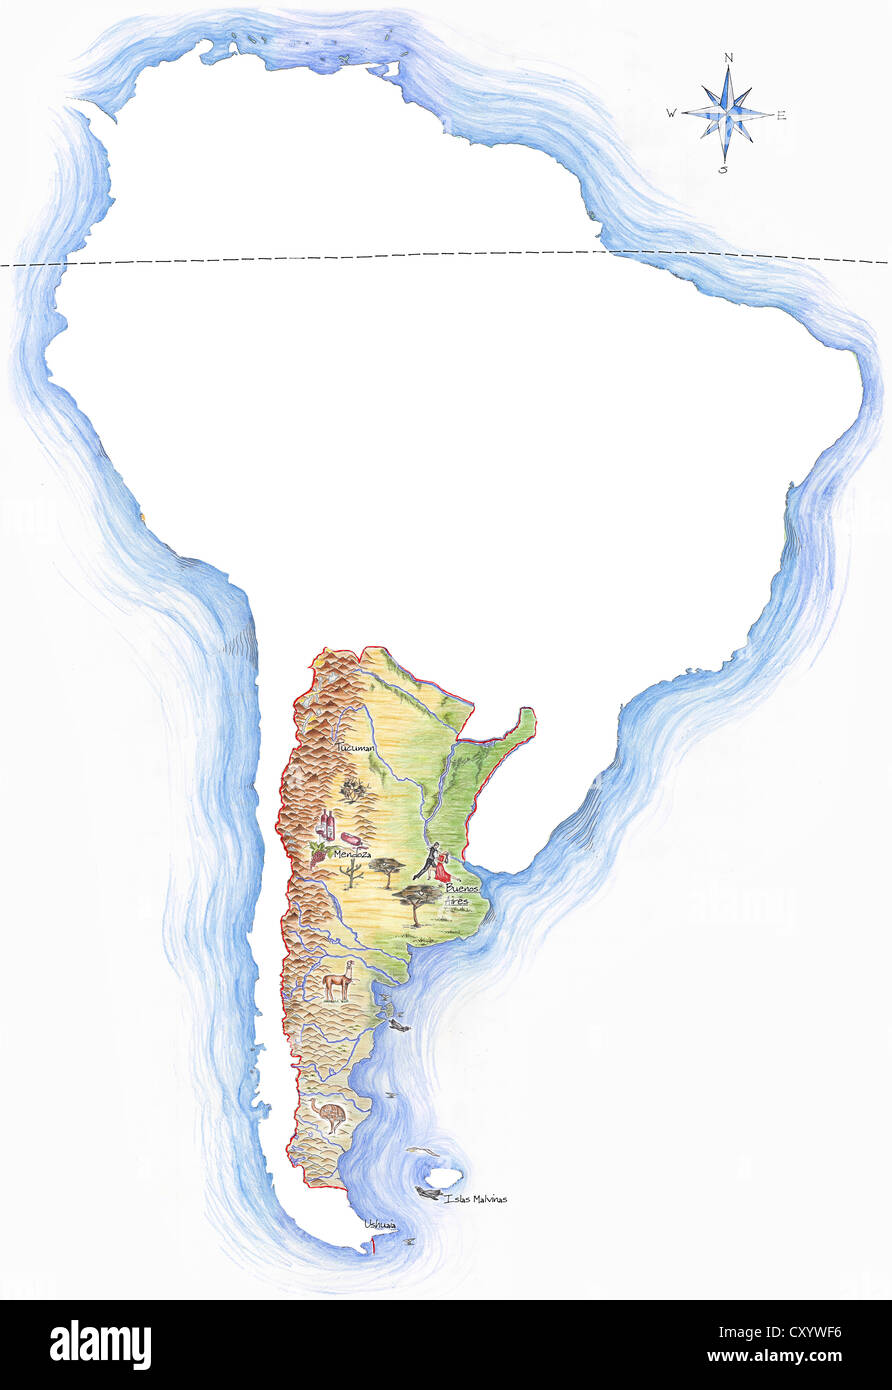 Highly Detailed Handdrawn Map Of Argentina Within The Outline Of - South america argentina map